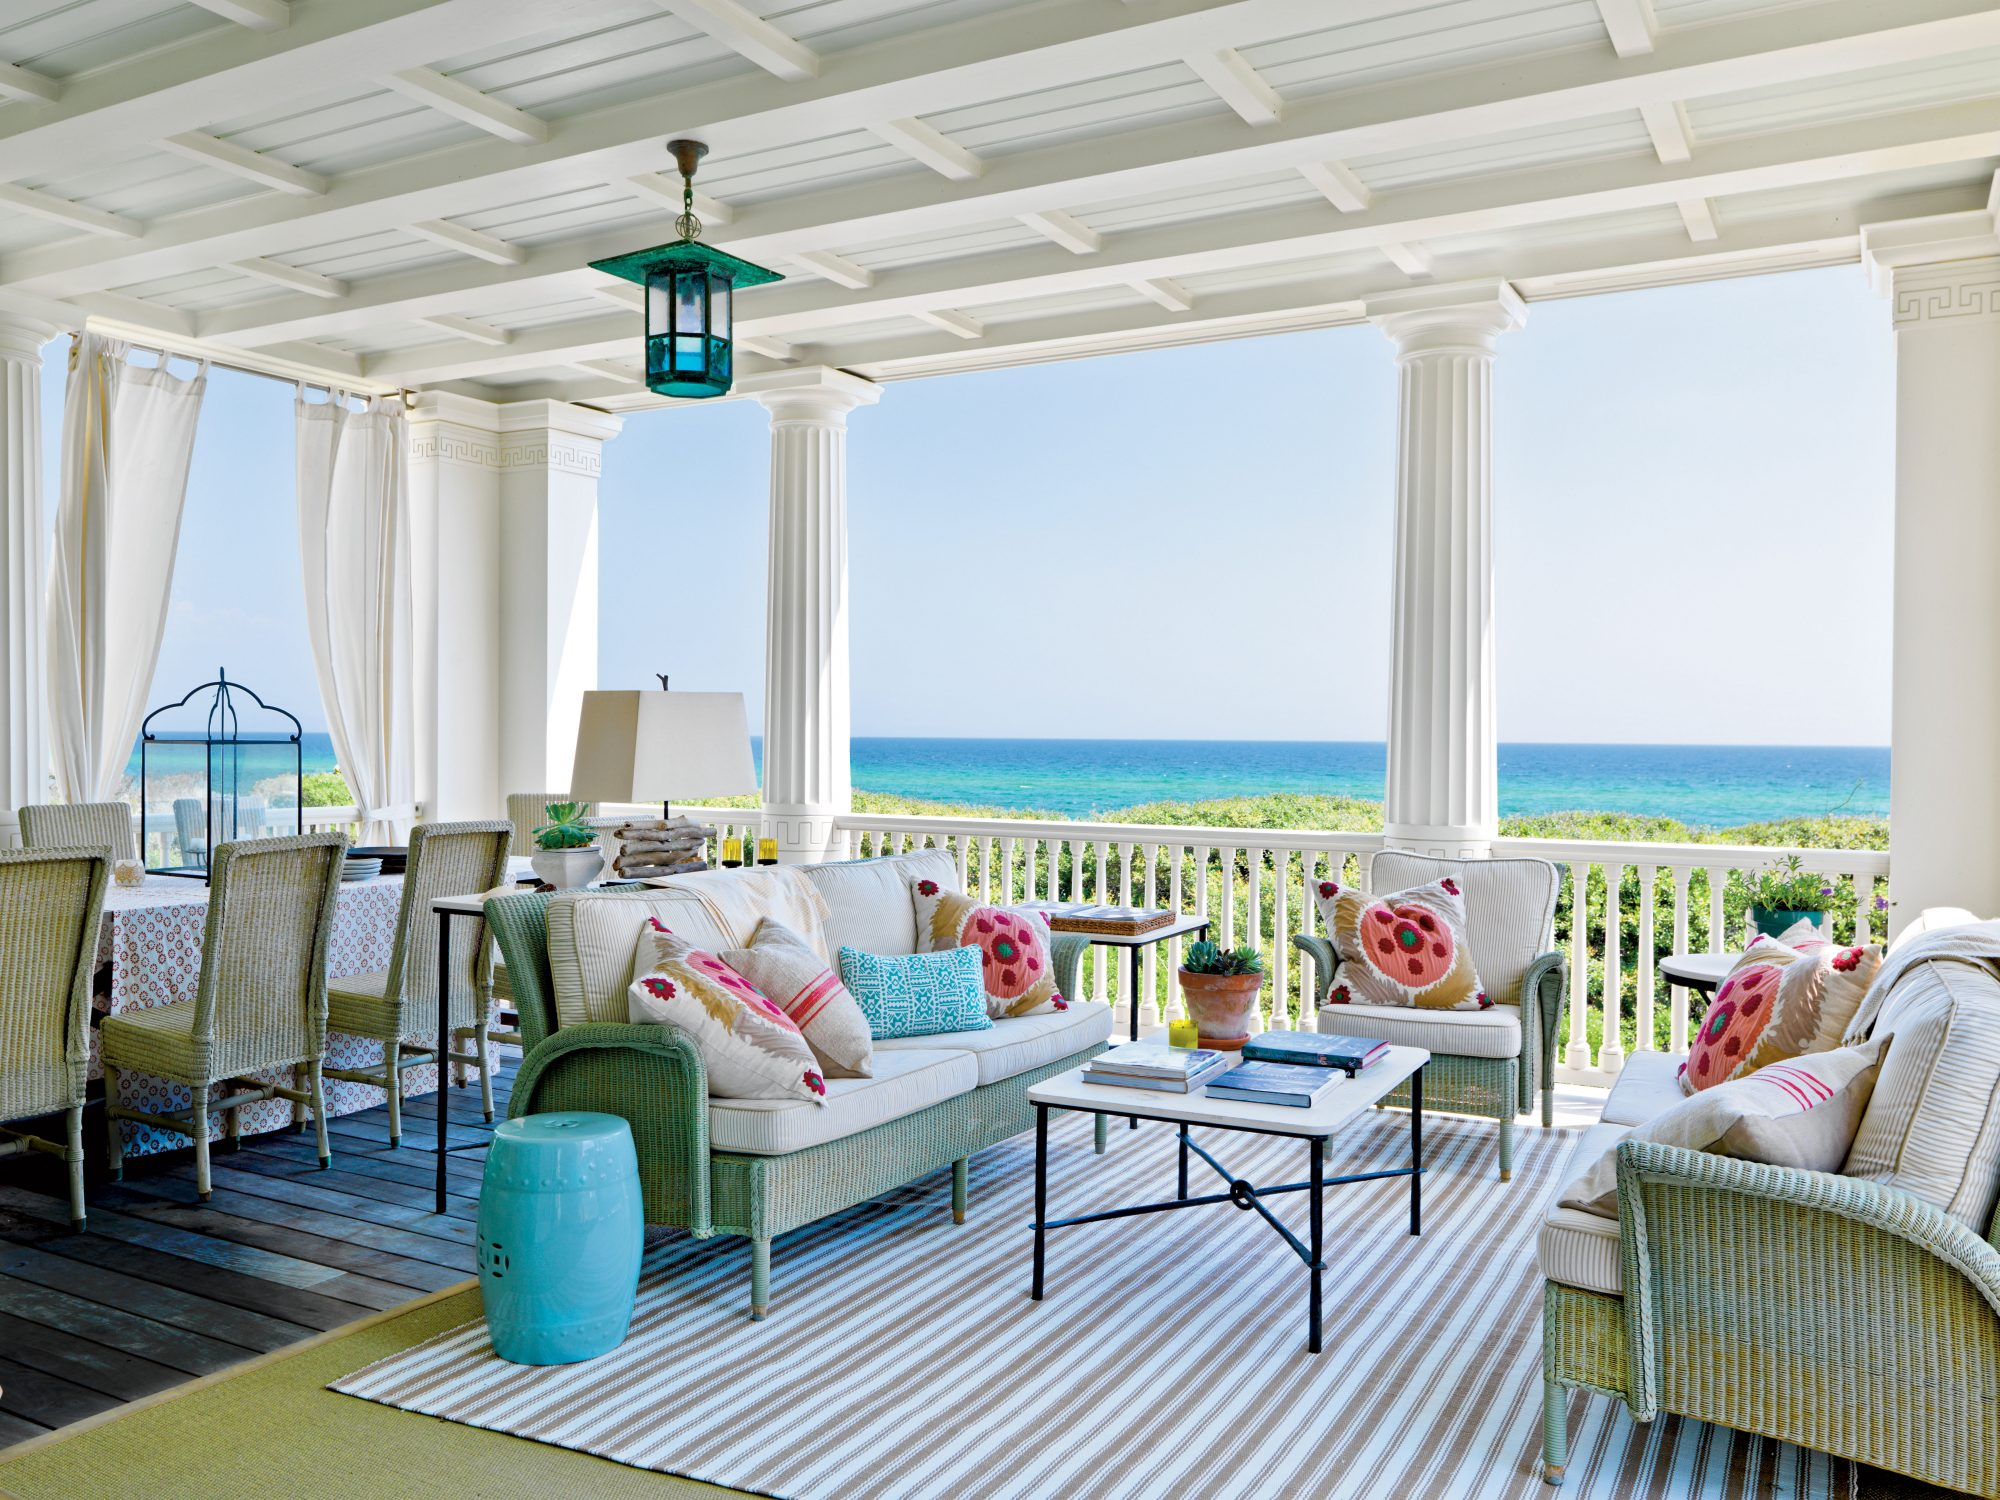 Brightly hued suzani throw pillows add a pop of color to this Gulf Coast perch. A striped indoor/outdoor rug provides ample cushioning for bare feet.